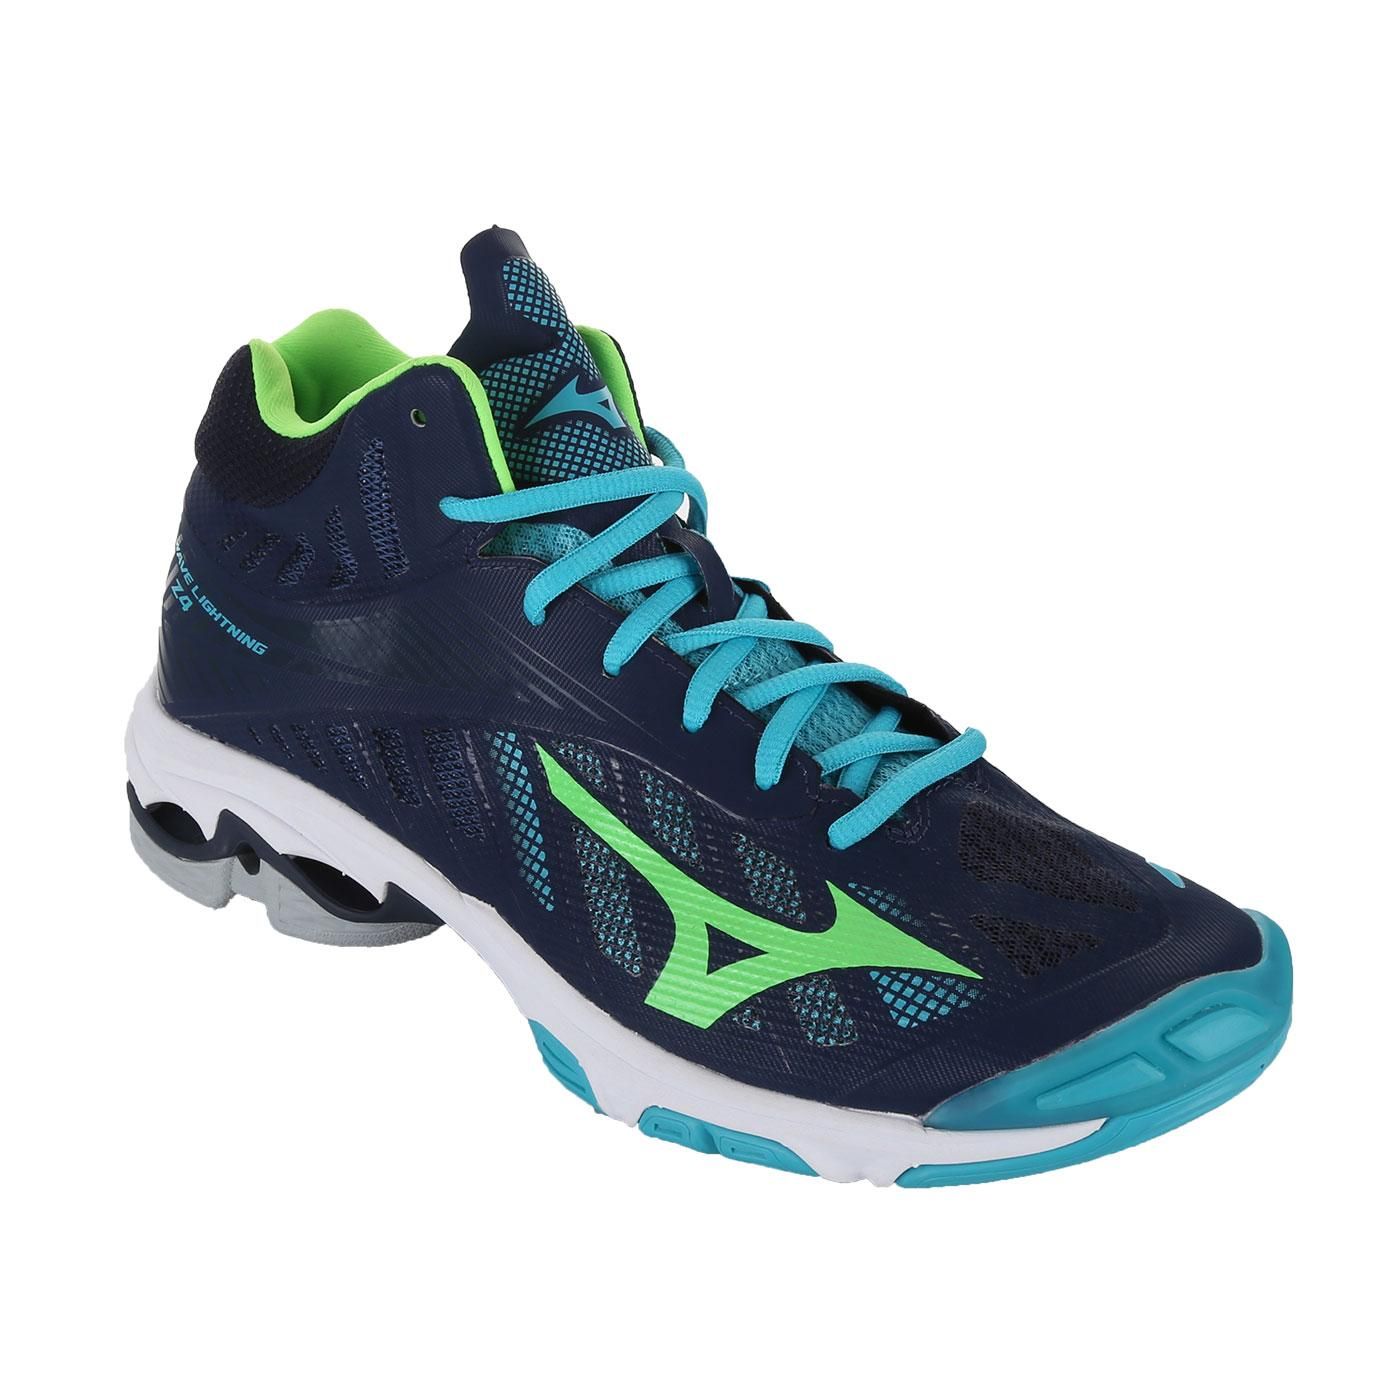 Sepatu voli Mizuno V1GA180536 Wave Lightning Z4 Mid - Dress Blues Green Gecko Peacock